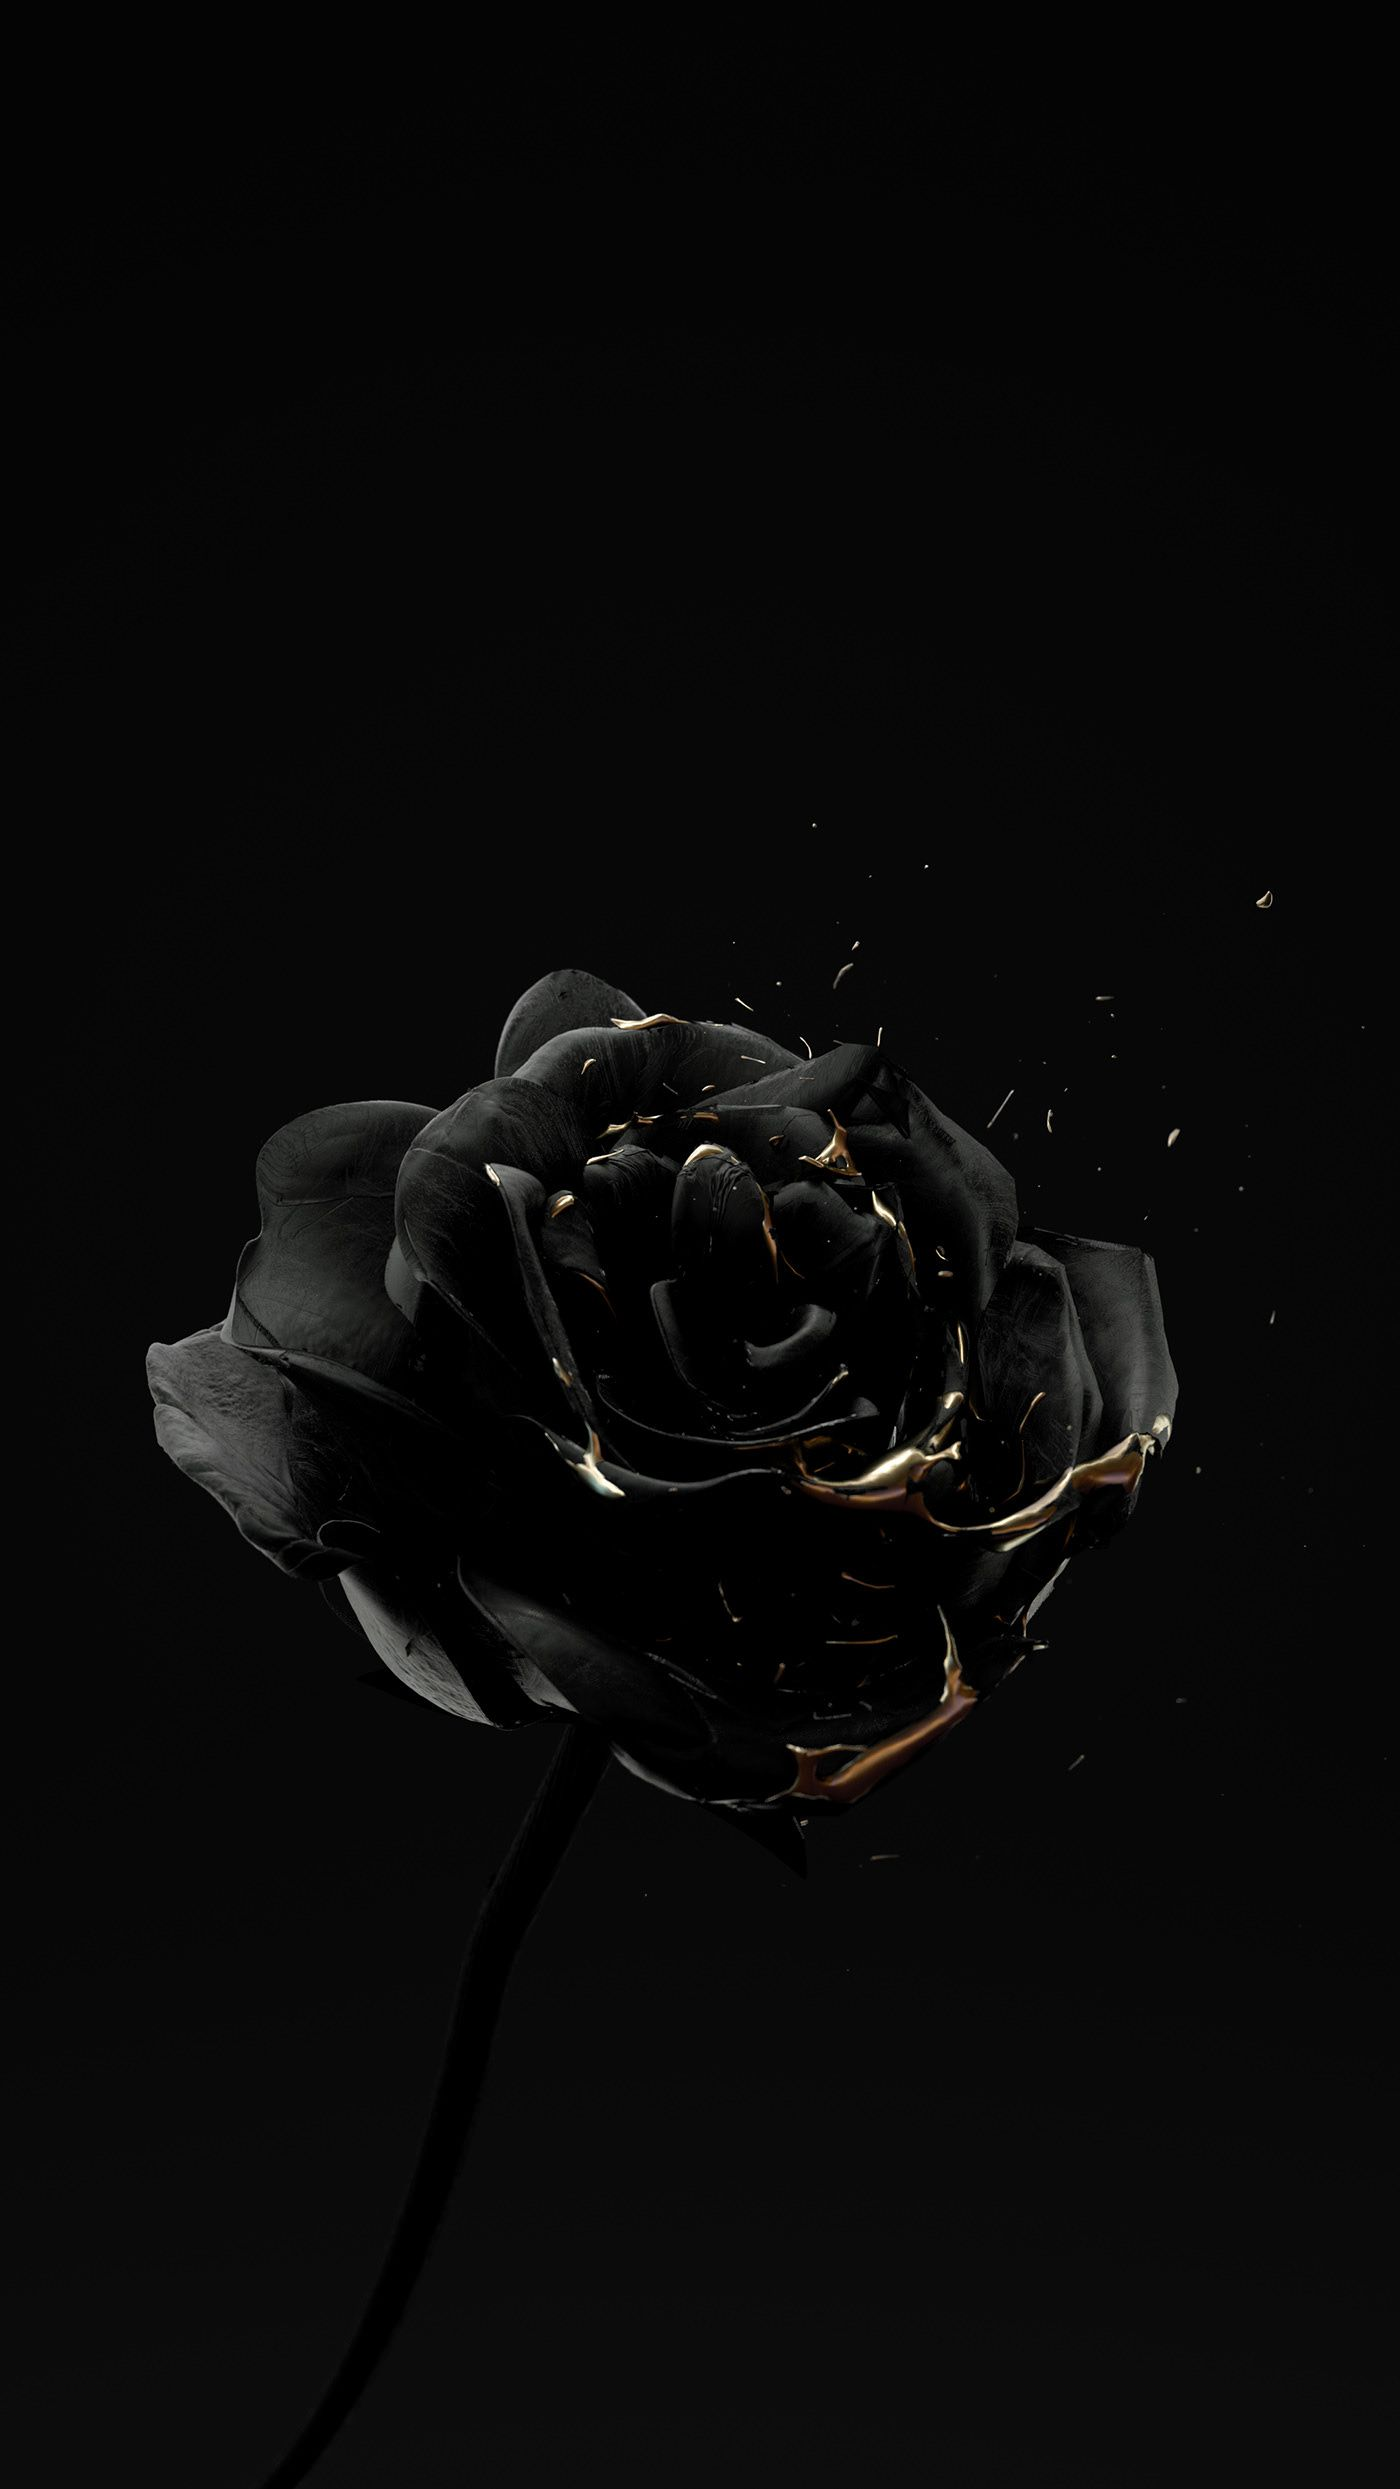 Roses Are Dead Vol 4 Black And Gold On Behance Black Aesthetic Wallpaper Cute Black Wallpaper Black And Gold Aesthetic